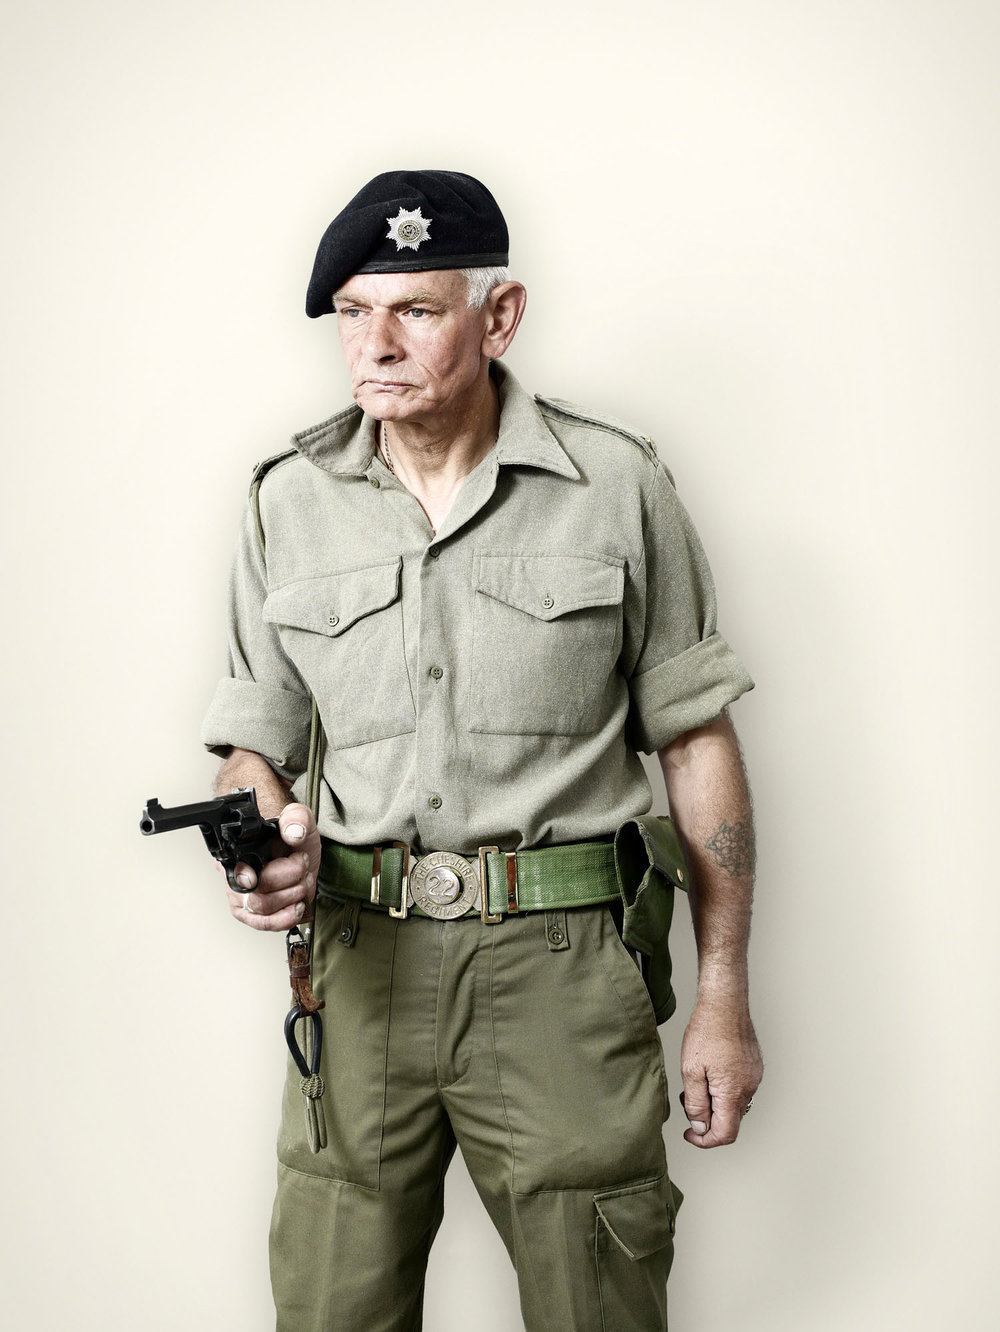 Post-War British Tank Crewman (2008)